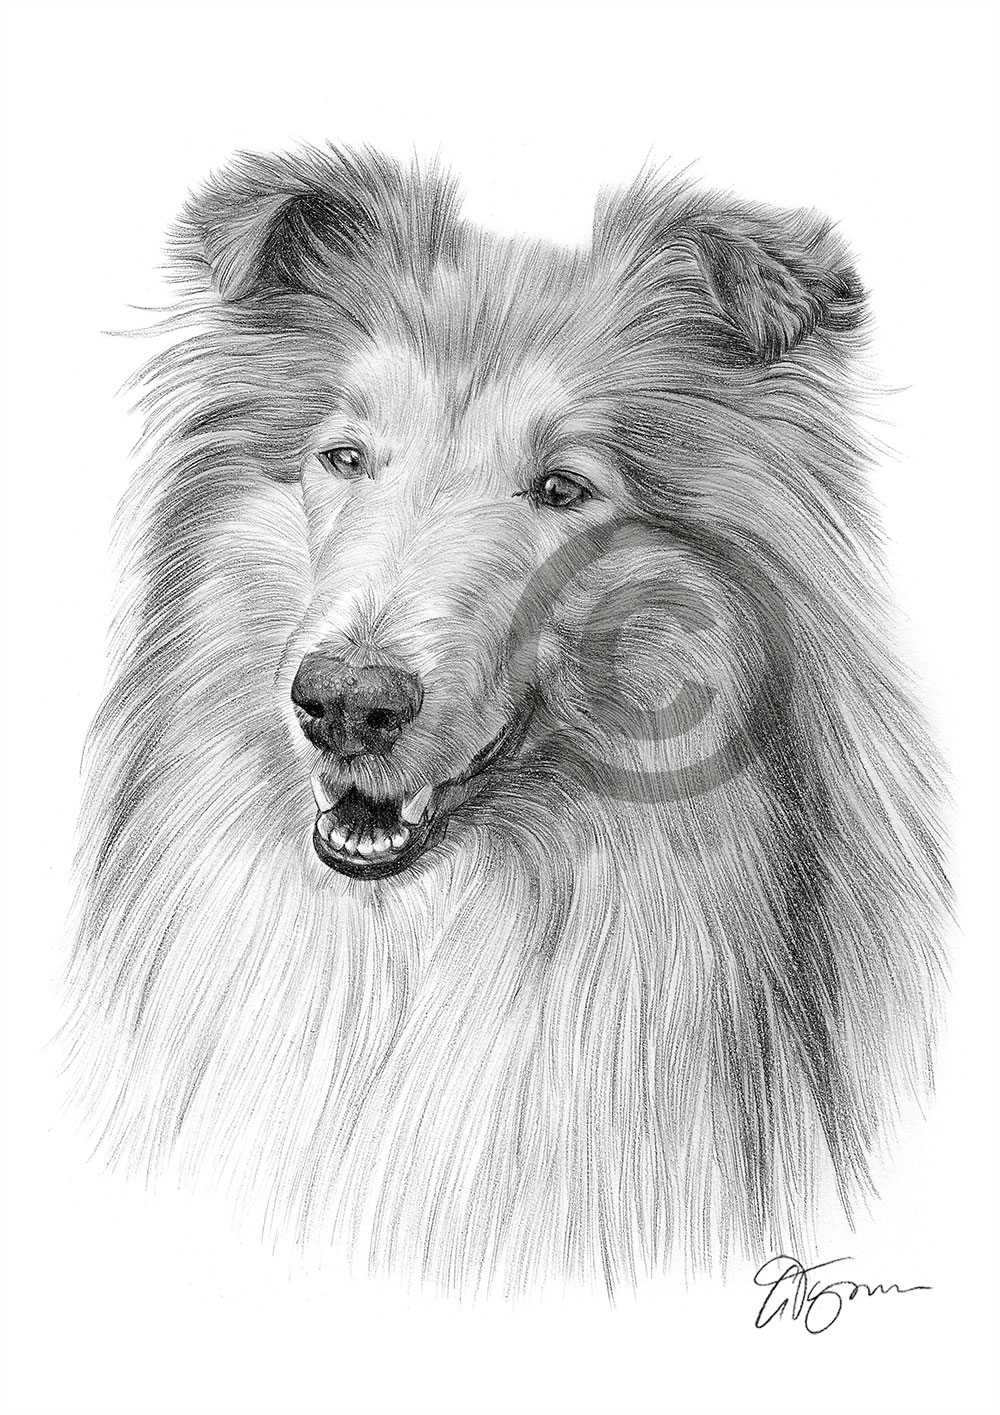 Rough Collie pencil drawing by artist Gary Tymon